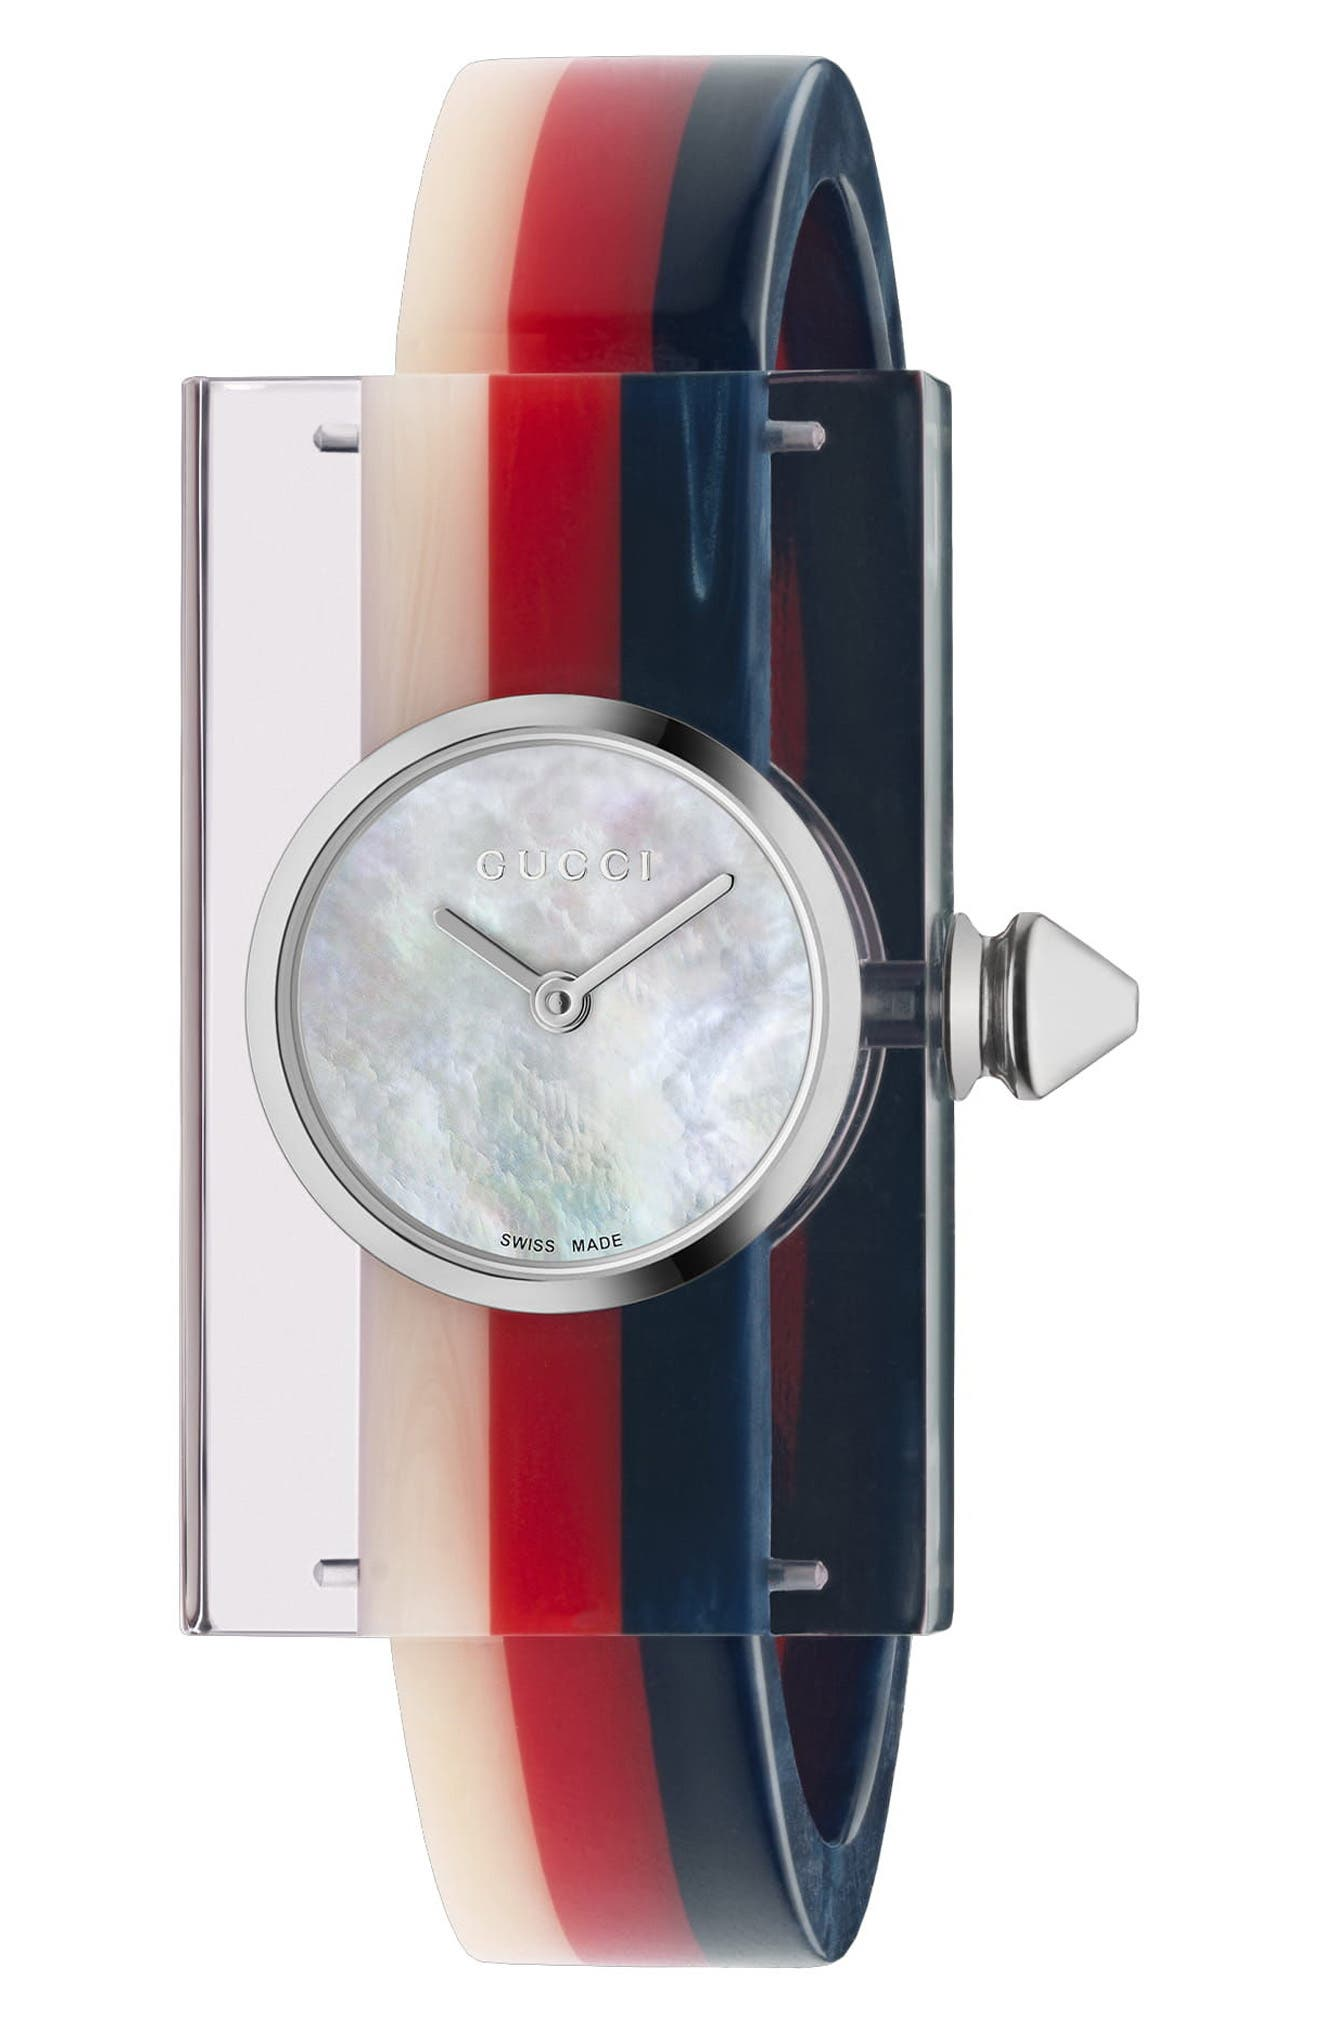 Gucci Plexiglas Bracelet Watch, 24mm x 40mm